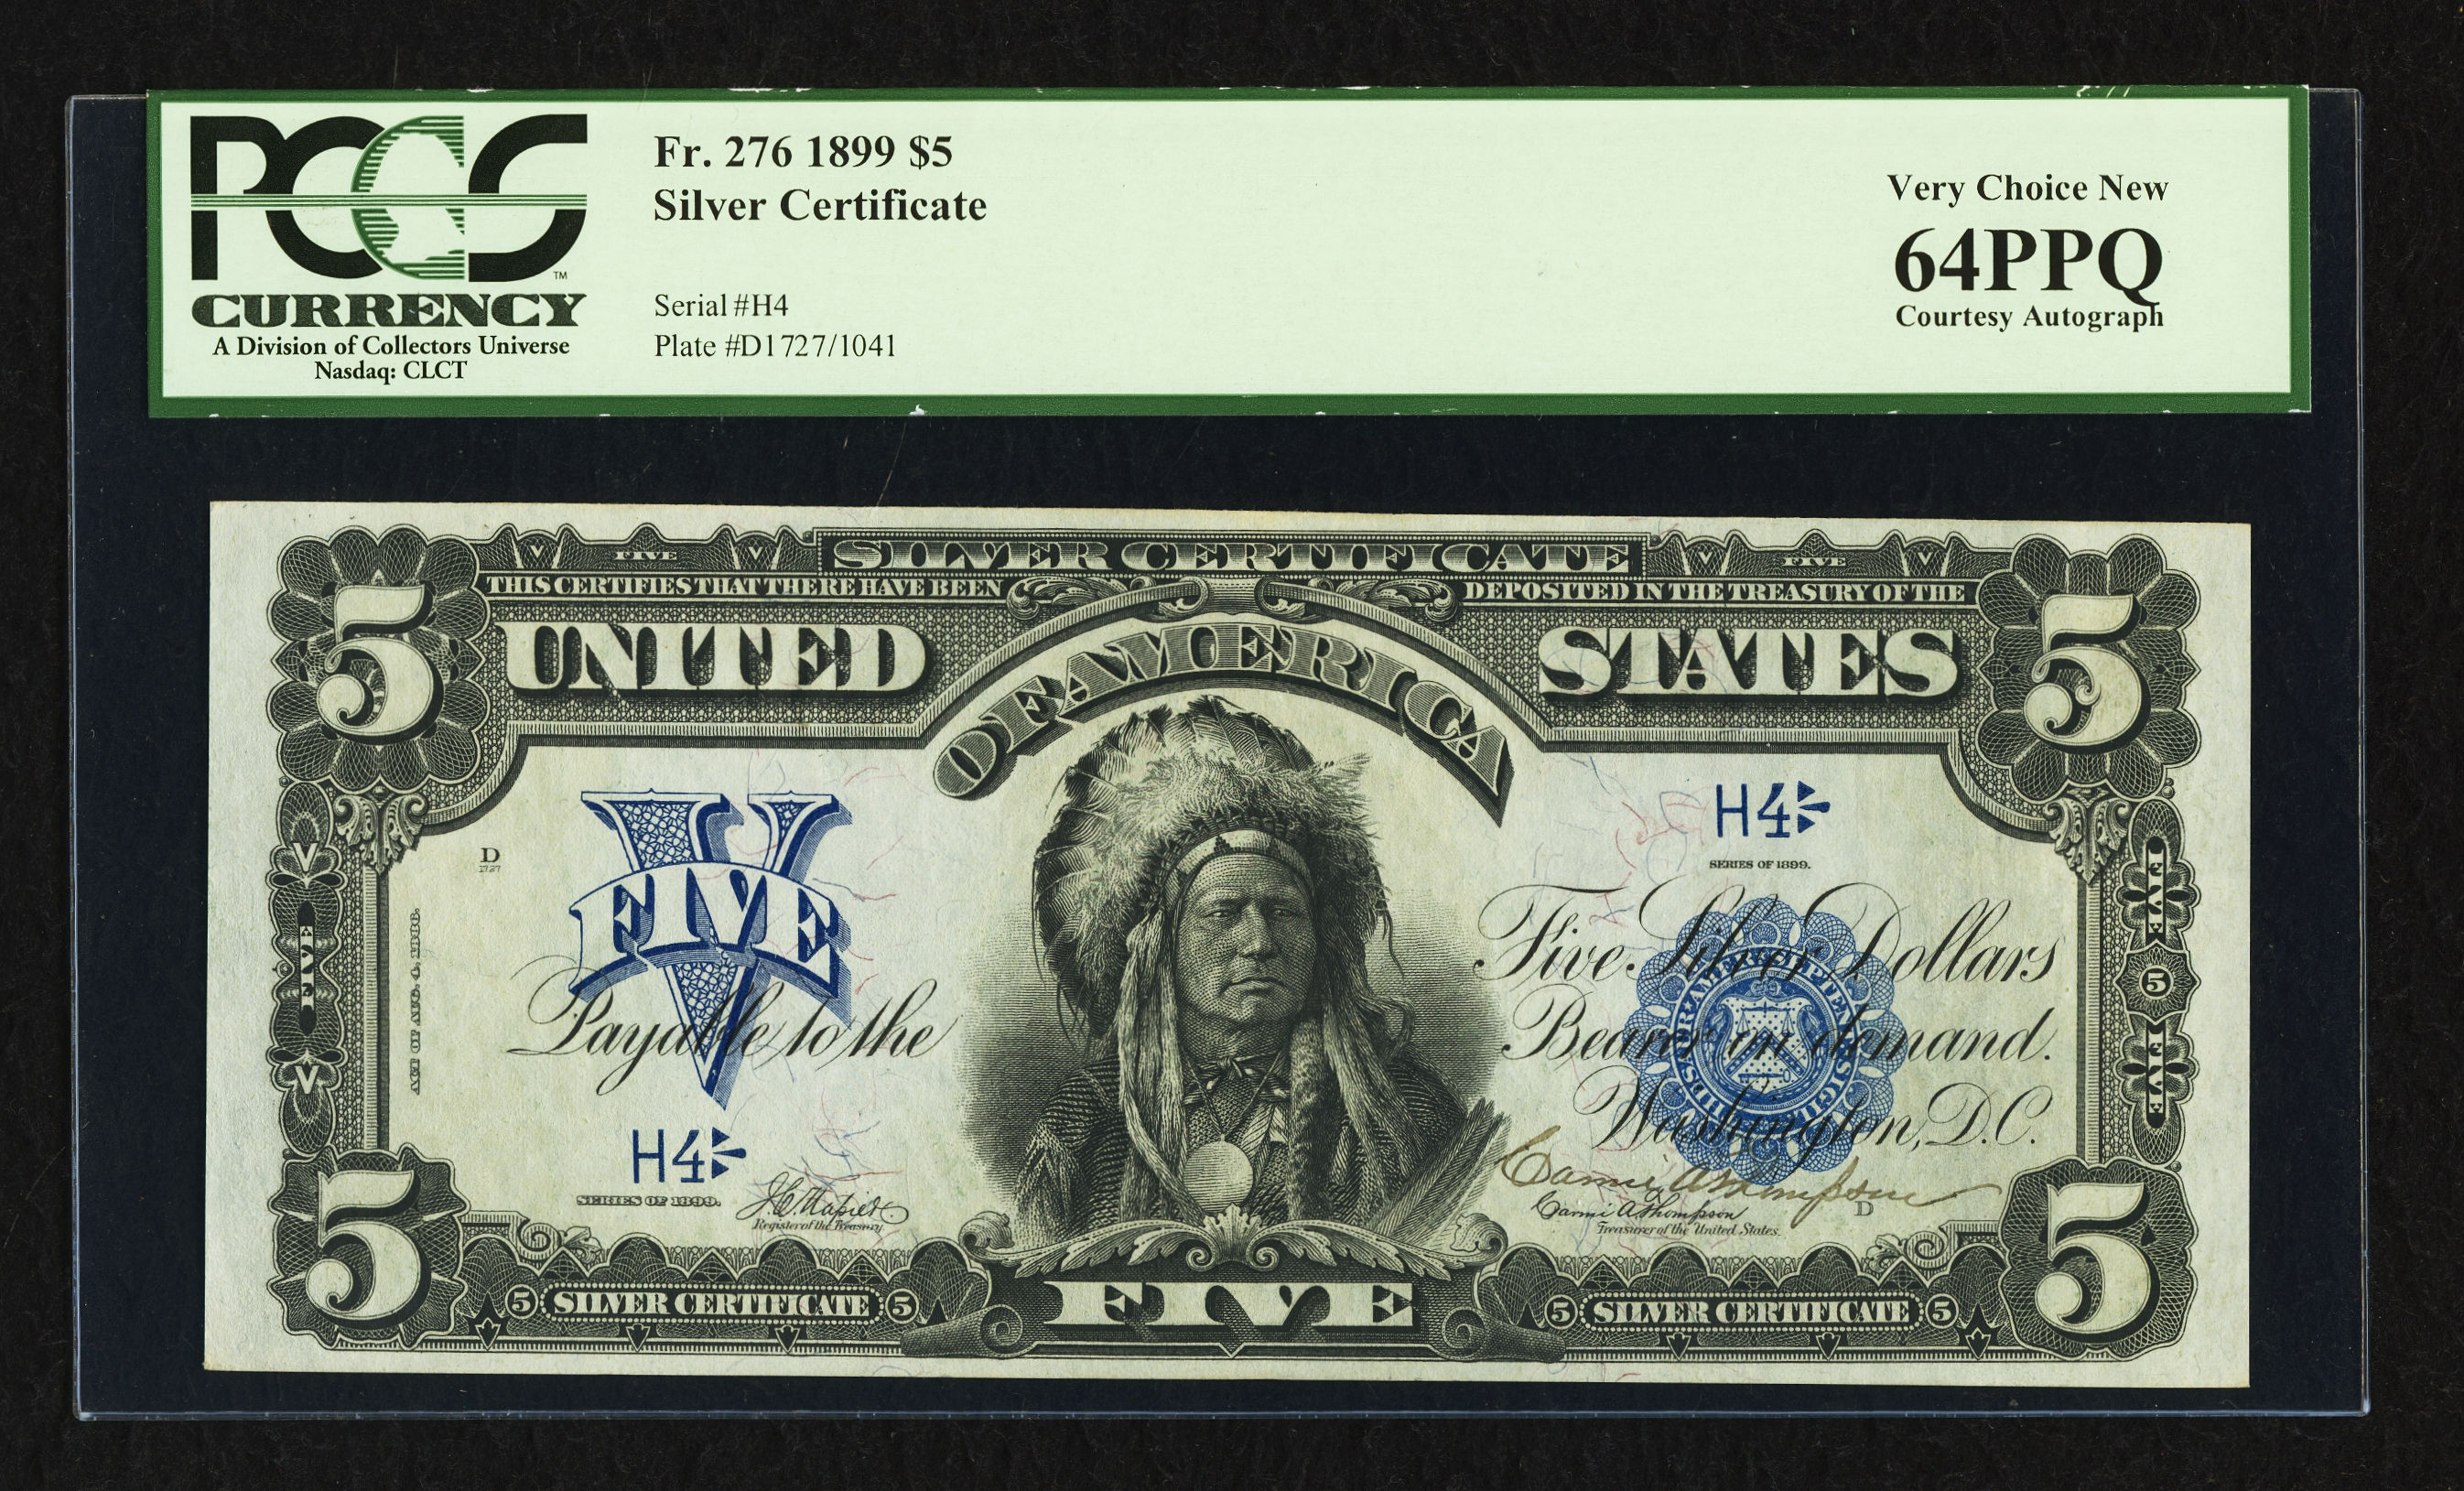 Fr. 276 1899 $5 Silver Certificate - Napier-Thompson - PCGS 64 PPQ - Thompson Courtesy Autograph, Serial H4 - Heritage ANA Signature Currency Auction Oct. 17-23, 2012